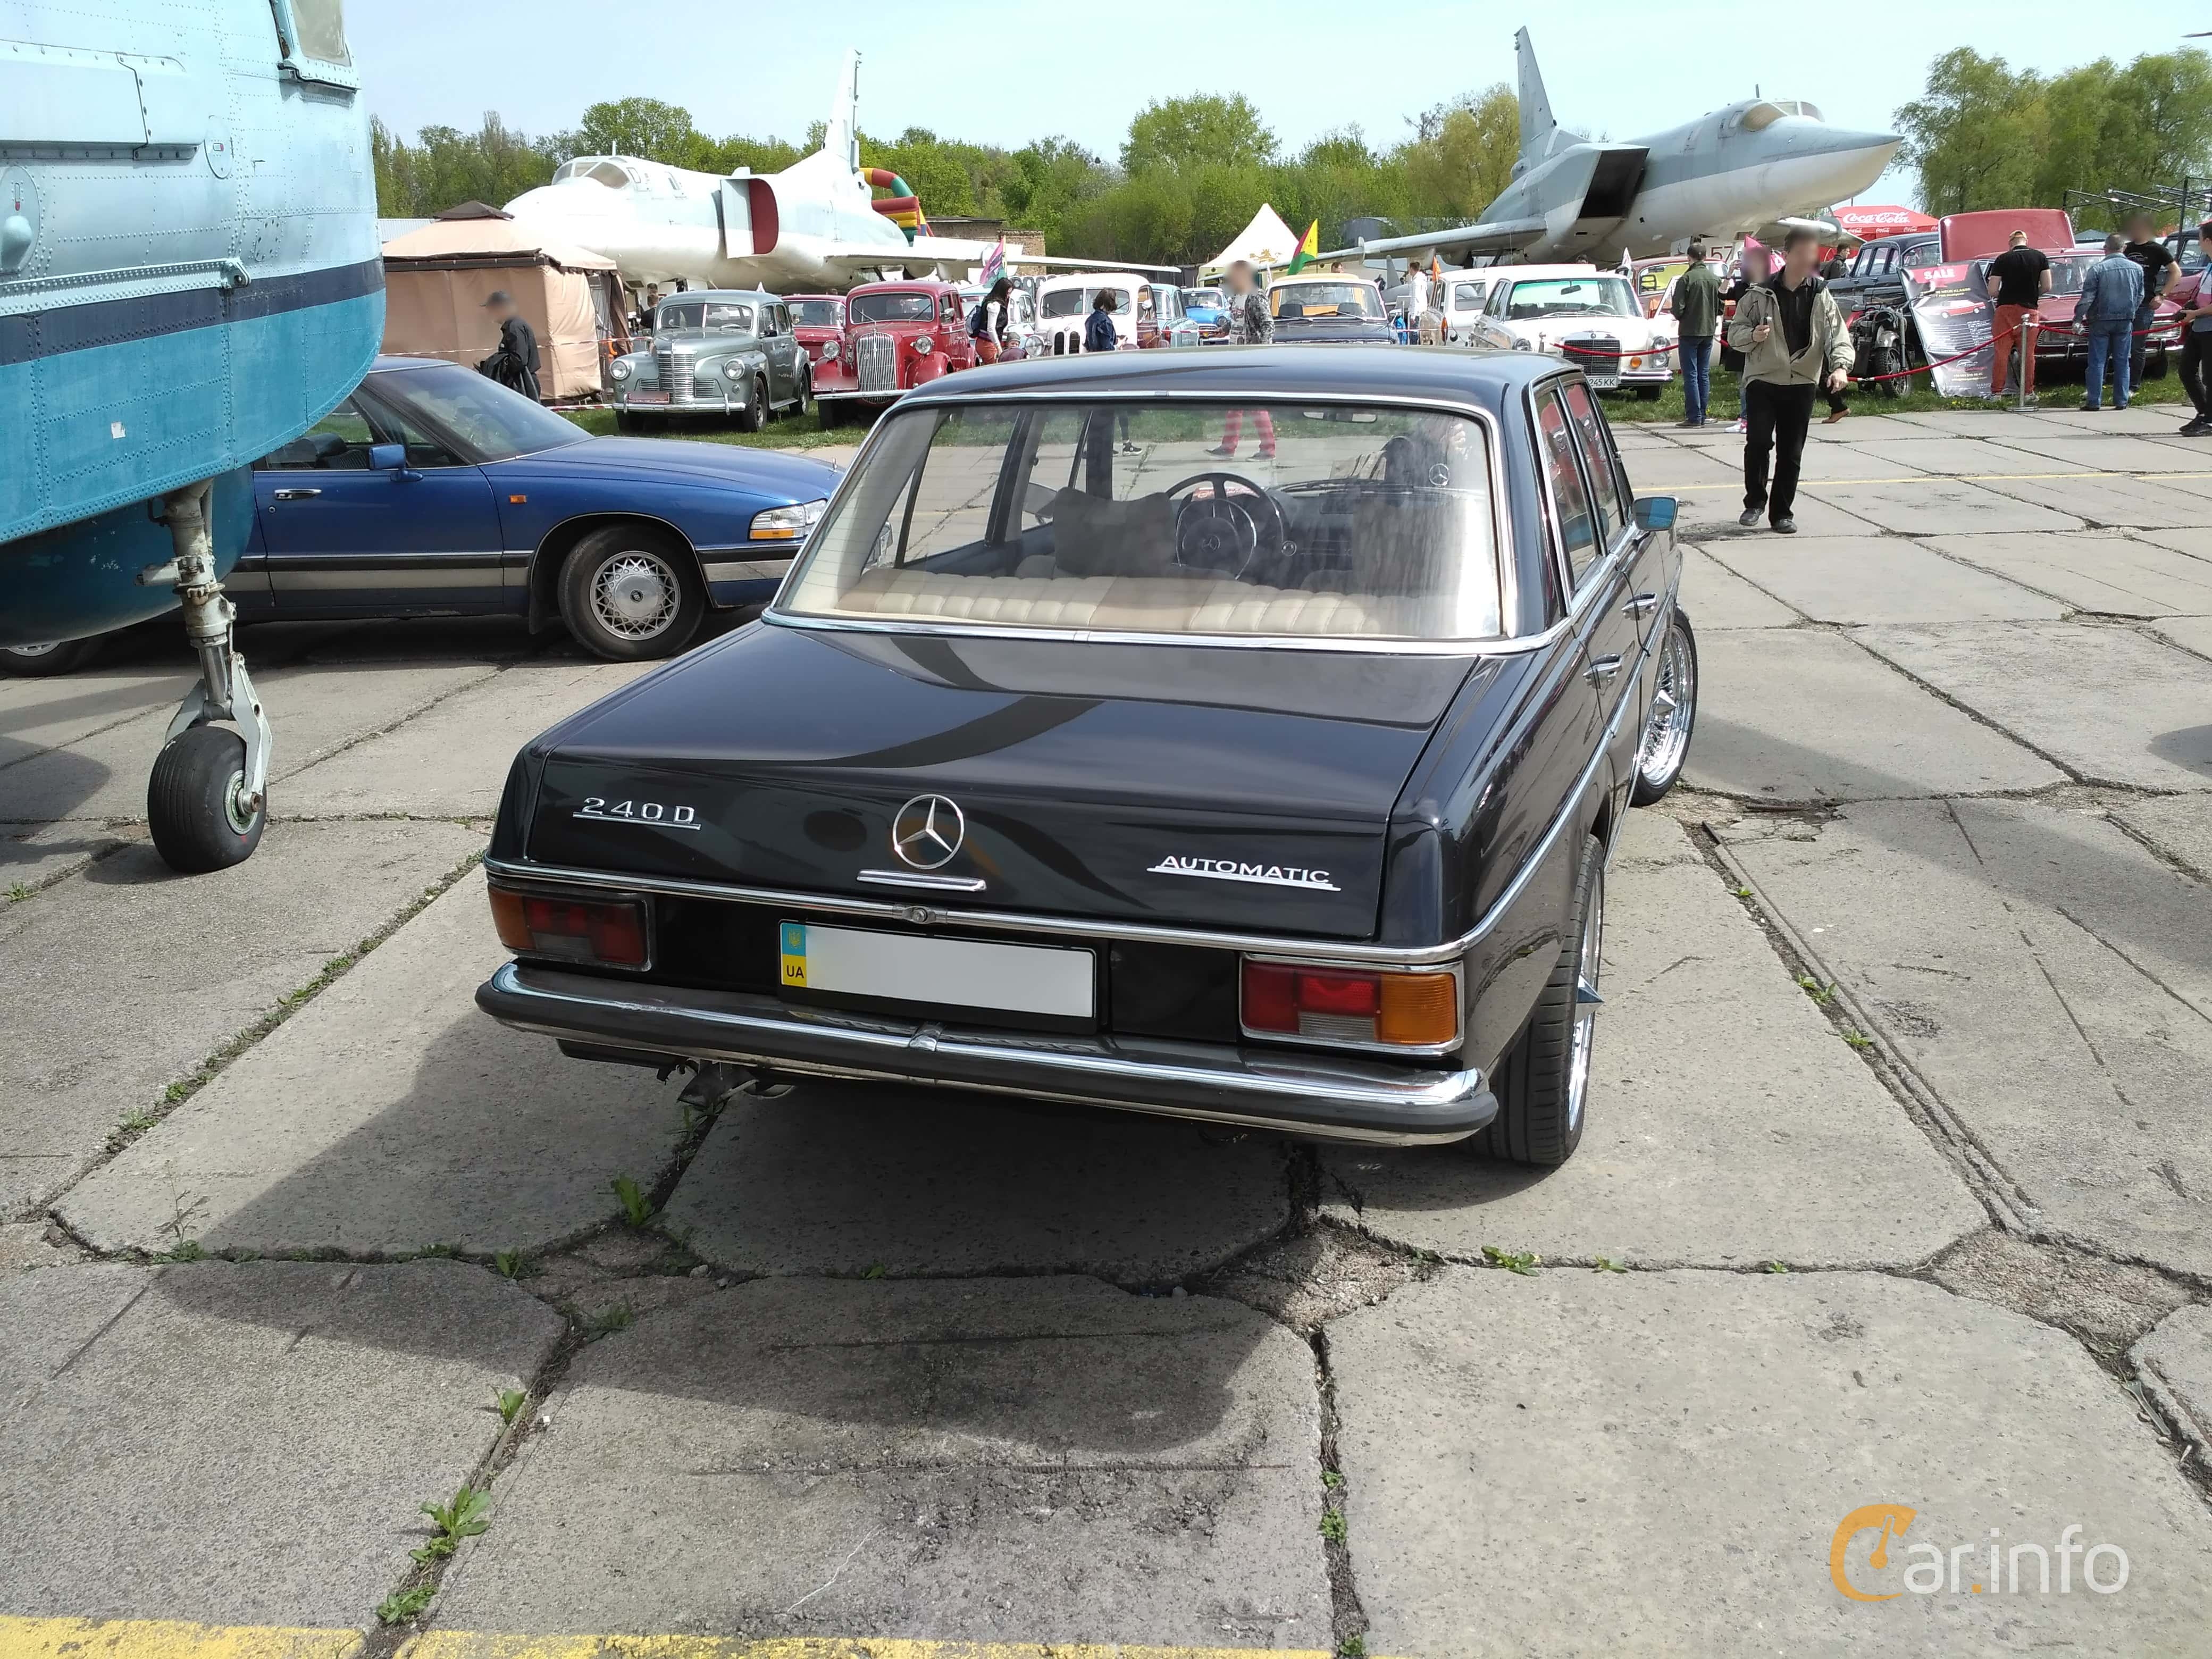 6 images of Mercedes Benz 240 D Lang Automatic 65hp 1973 by